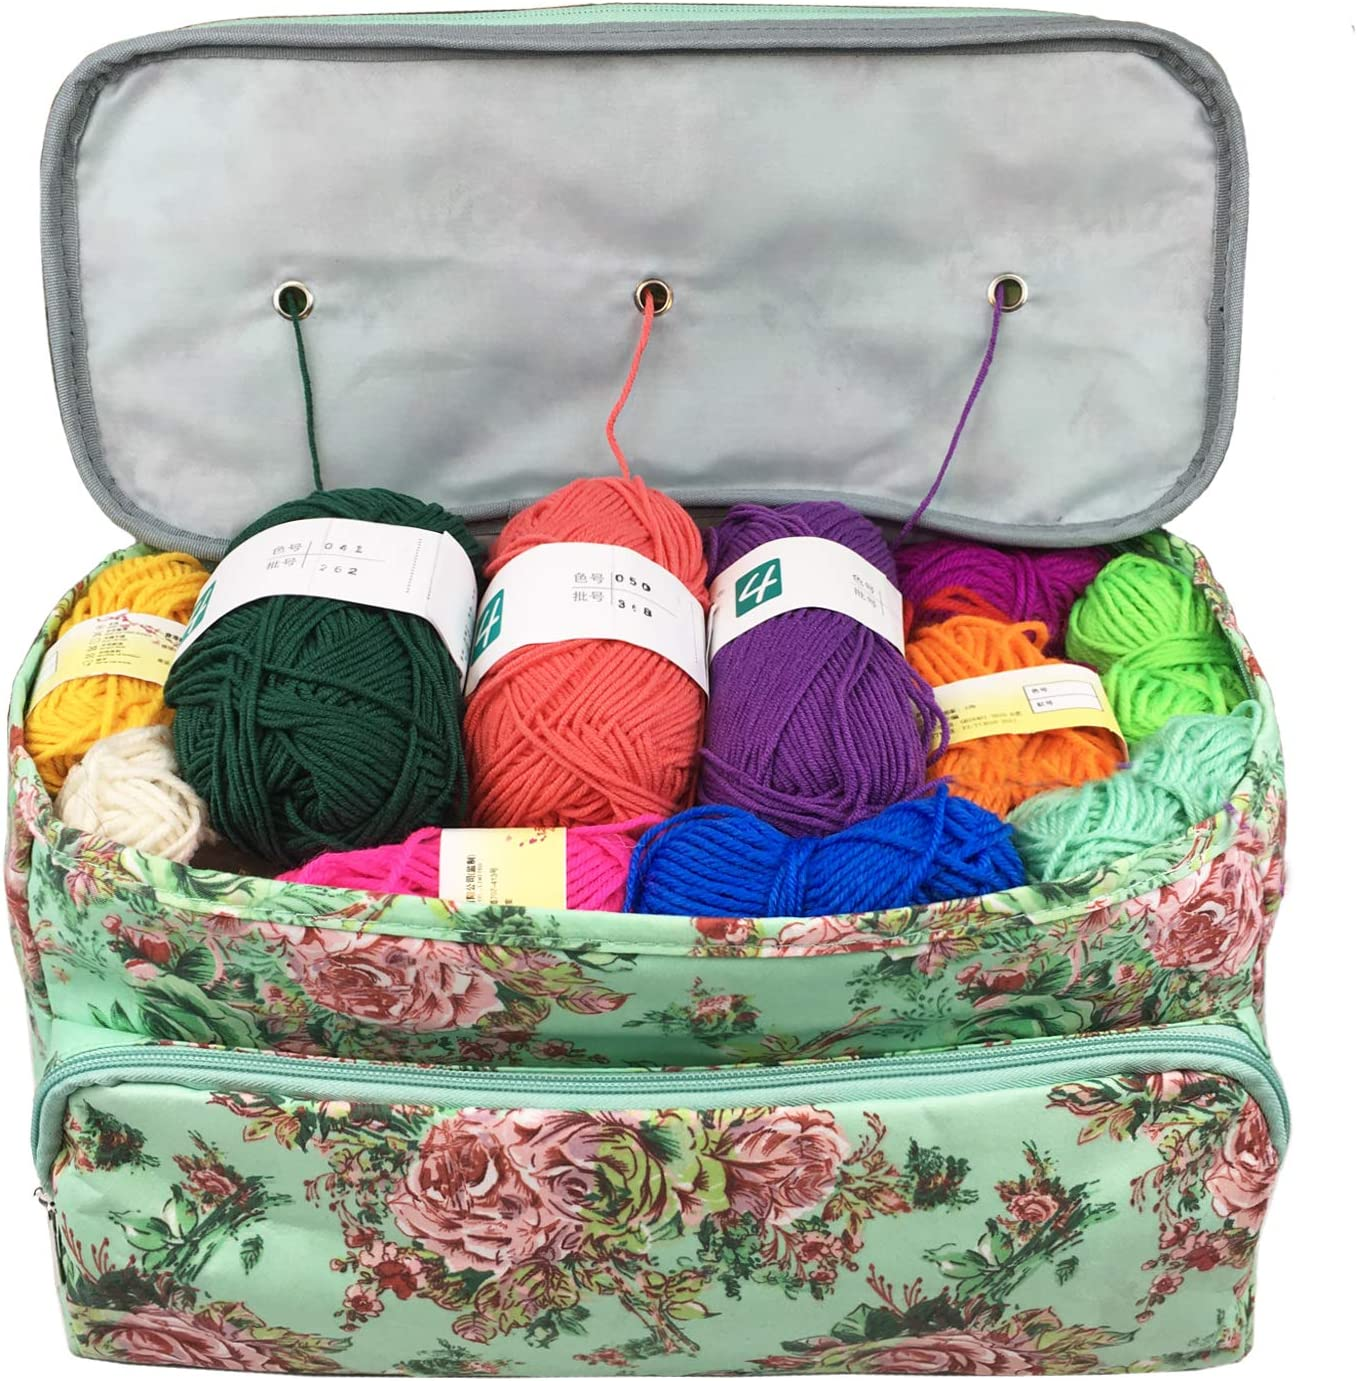 Portable Storage Tote Bag Sewing Knitting Yarn/&Wool Organizer Holder Bag